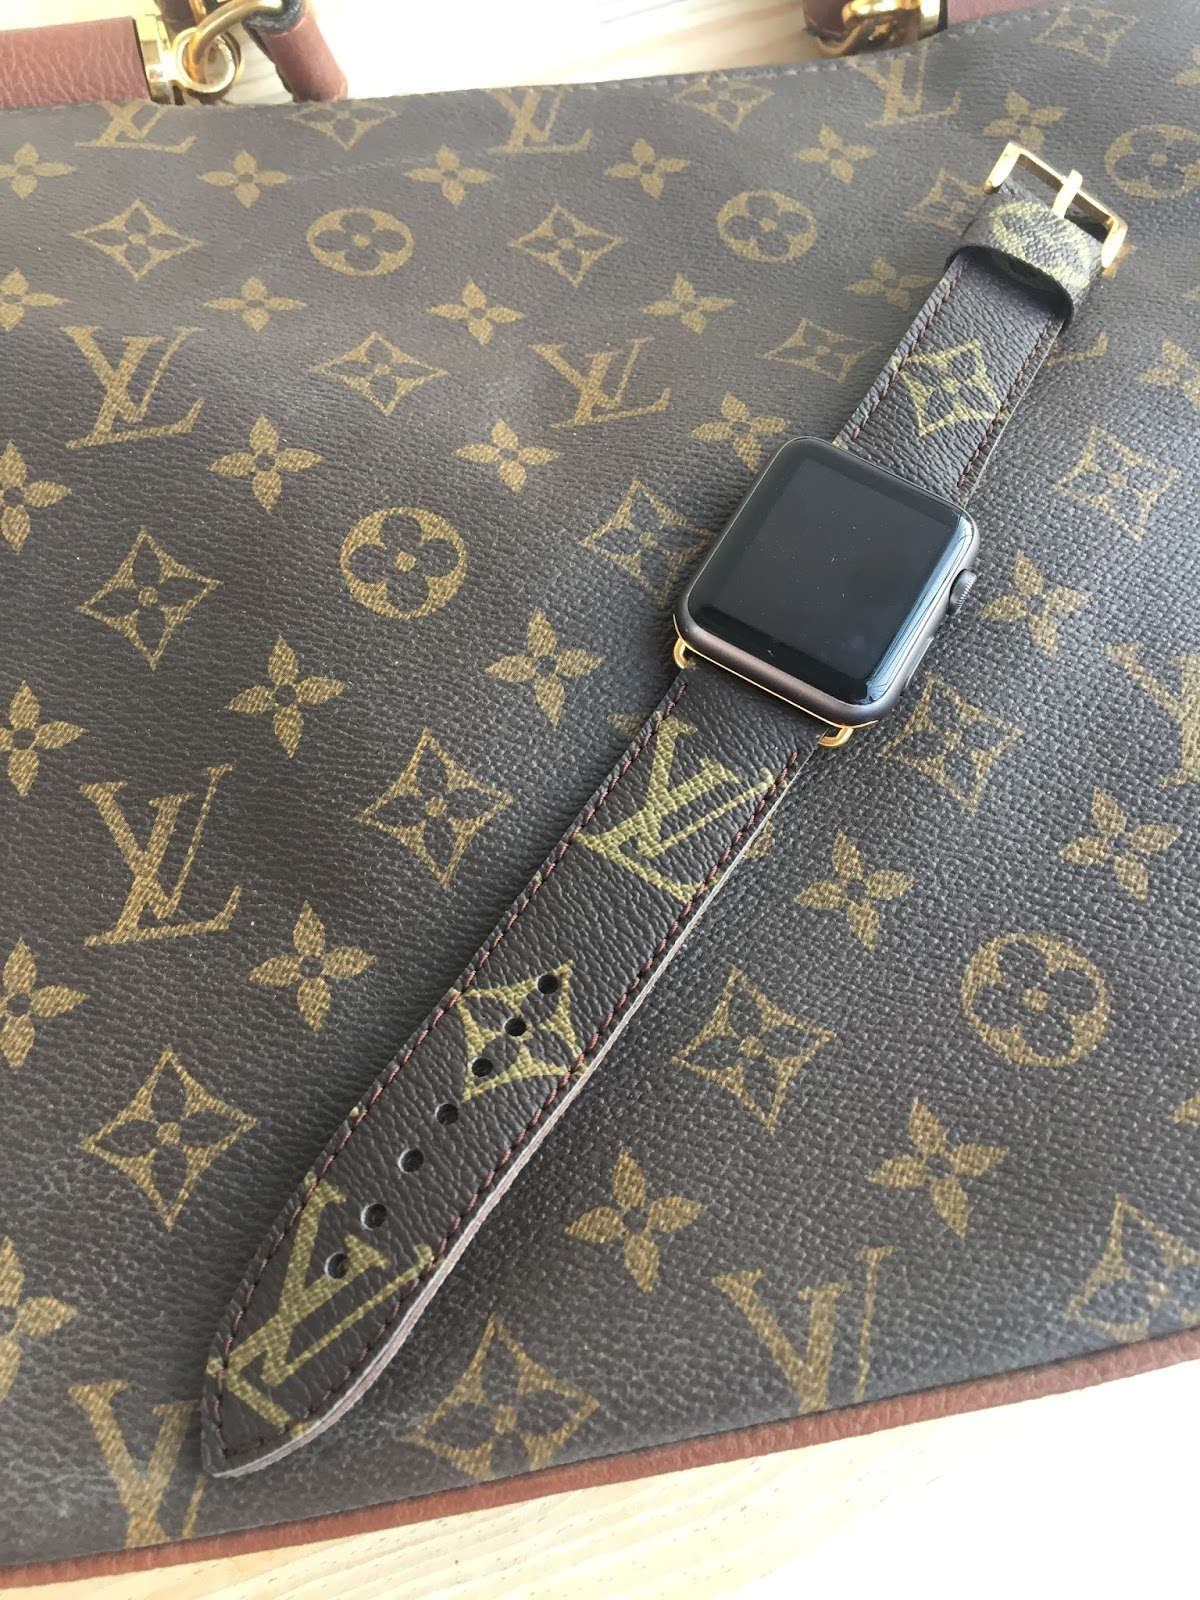 Instagram Page Apple Watch Band Apple Watch Strap Louis Vuitton Watch Band Louis Vuitton Watch Strap Apple Watch Leather Band Apple Watch Band